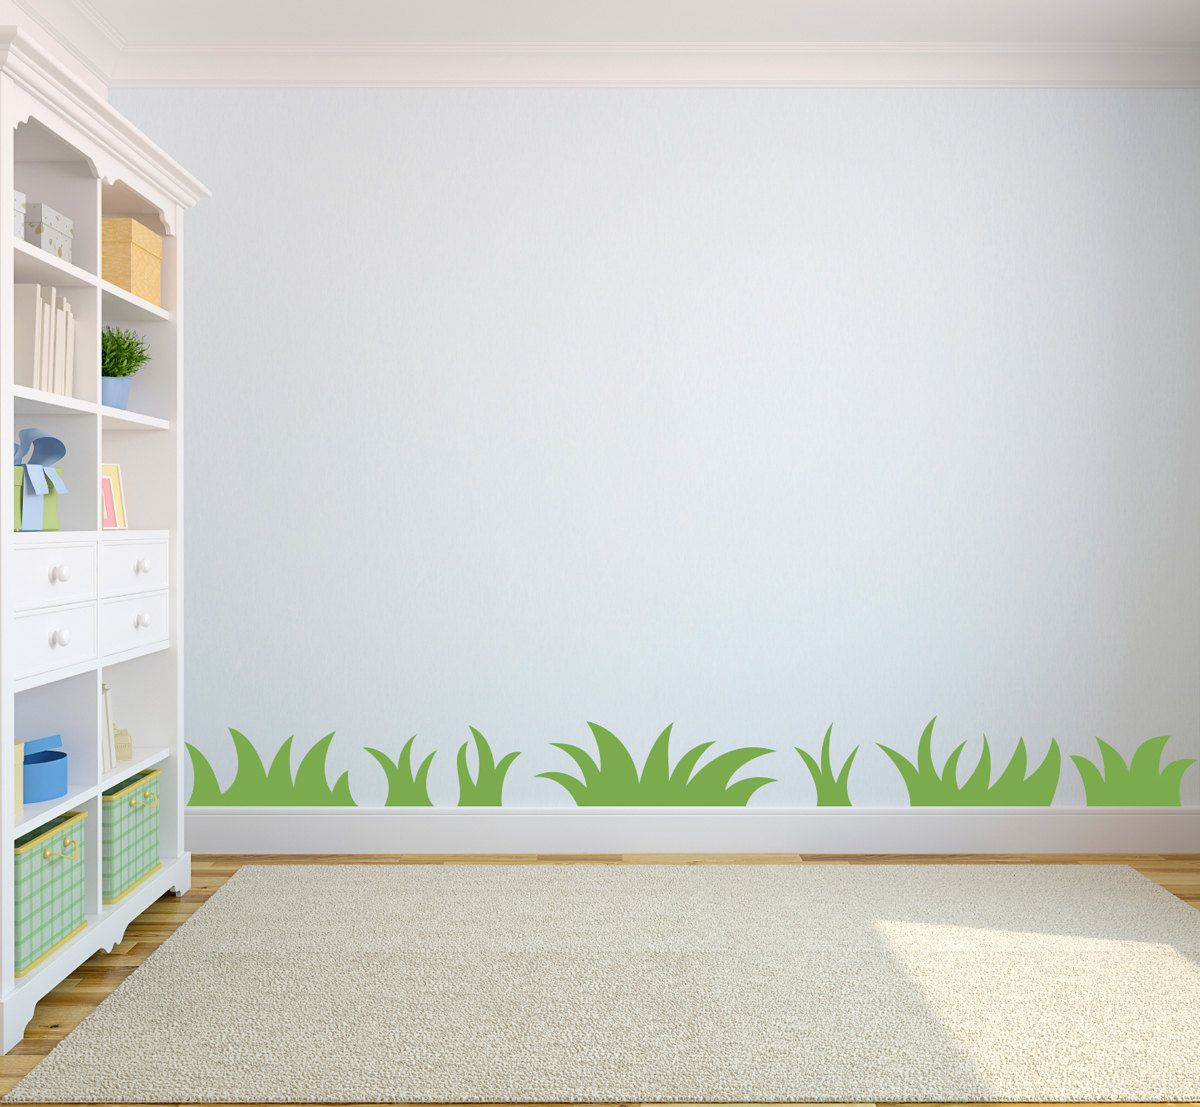 Wall Sconces For Children S Room : Grass Wall Decal - Nature wall art for Kids Bedroom - Set of 7 Grass Patches - Playroom Decor ...